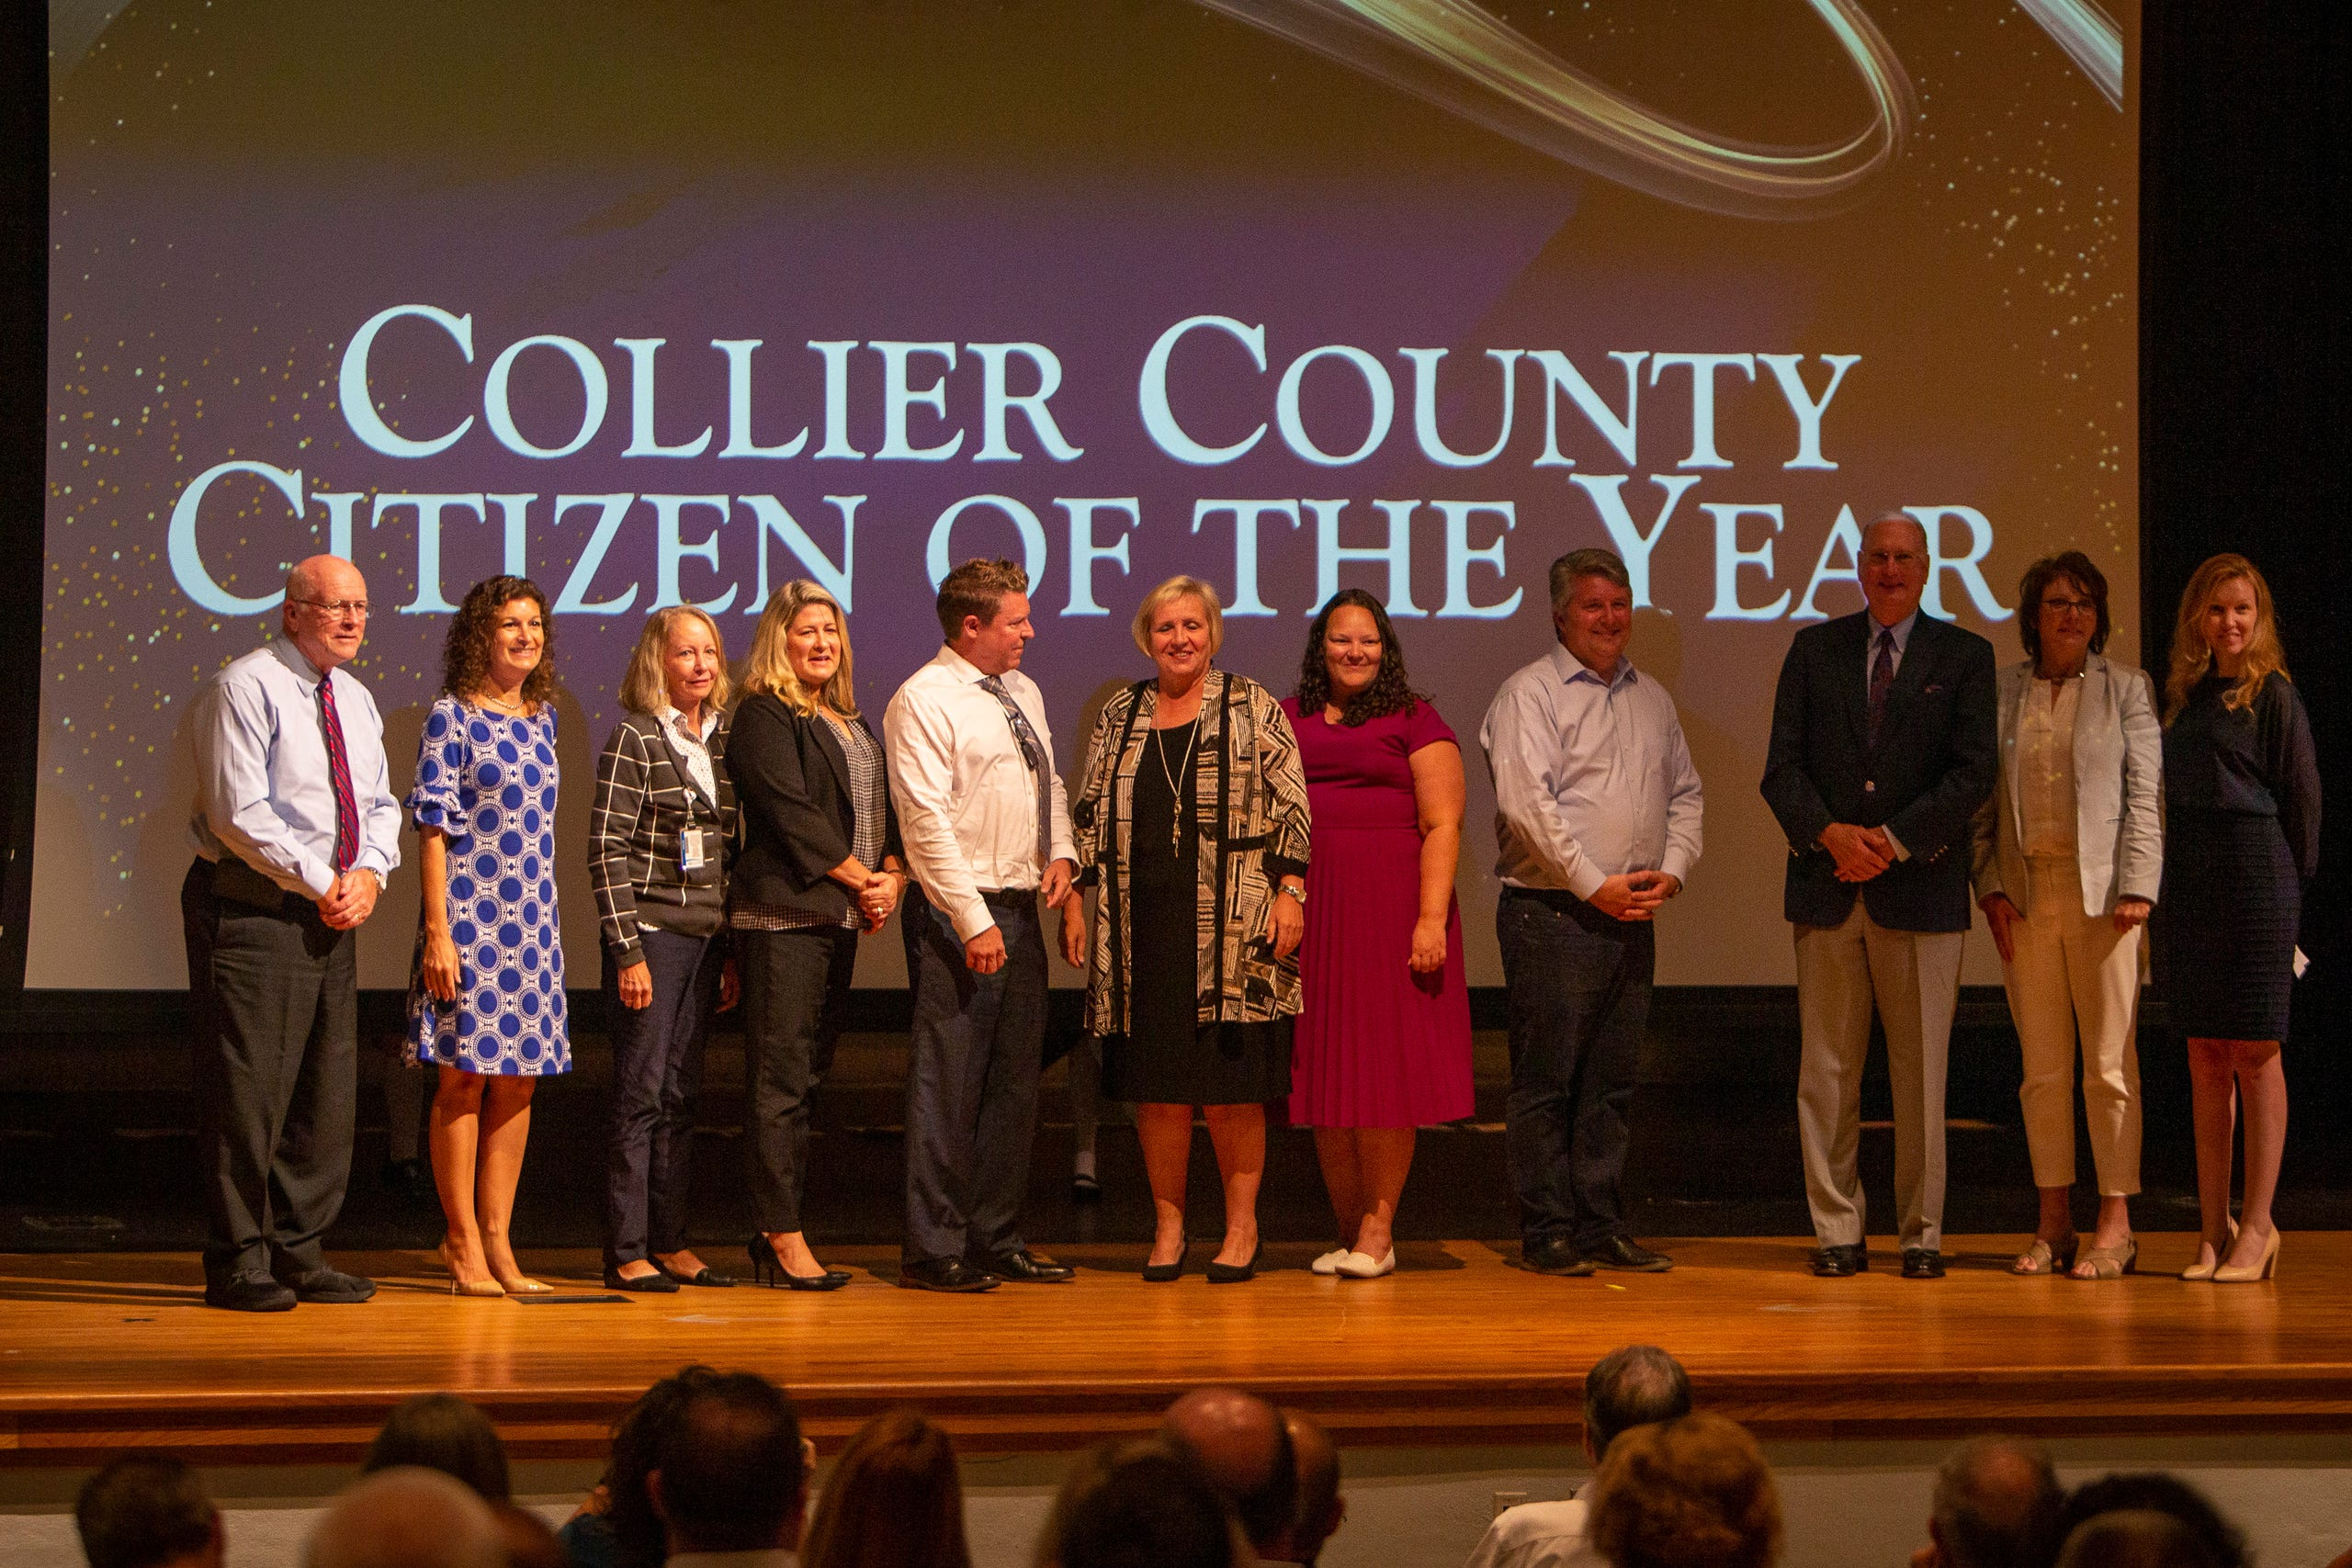 Kamela Patton, superintendent of Collier County Public Schools poses for photos with members of the Naples Daily News and the Greater Naples Chamber of Commerce after being named Outstanding Citizen of the Year during the Opening of Schools ceremony, Wednesday, Aug. 4, 2021, at Golden Gate High School.